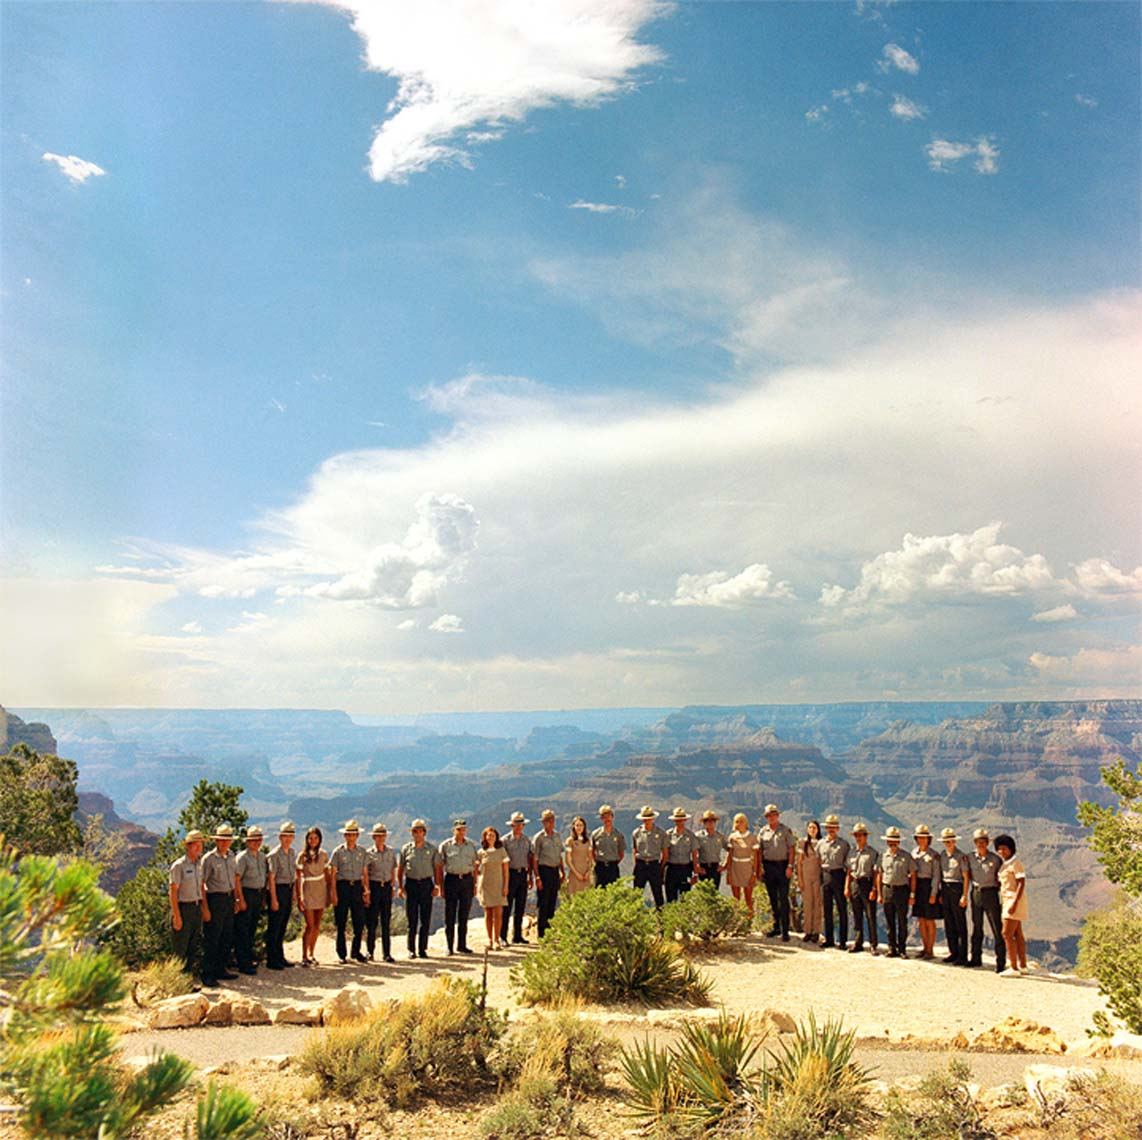 GRAND CANYON NATIONAL PARK SERVICE; GRAND CANYON, AZ